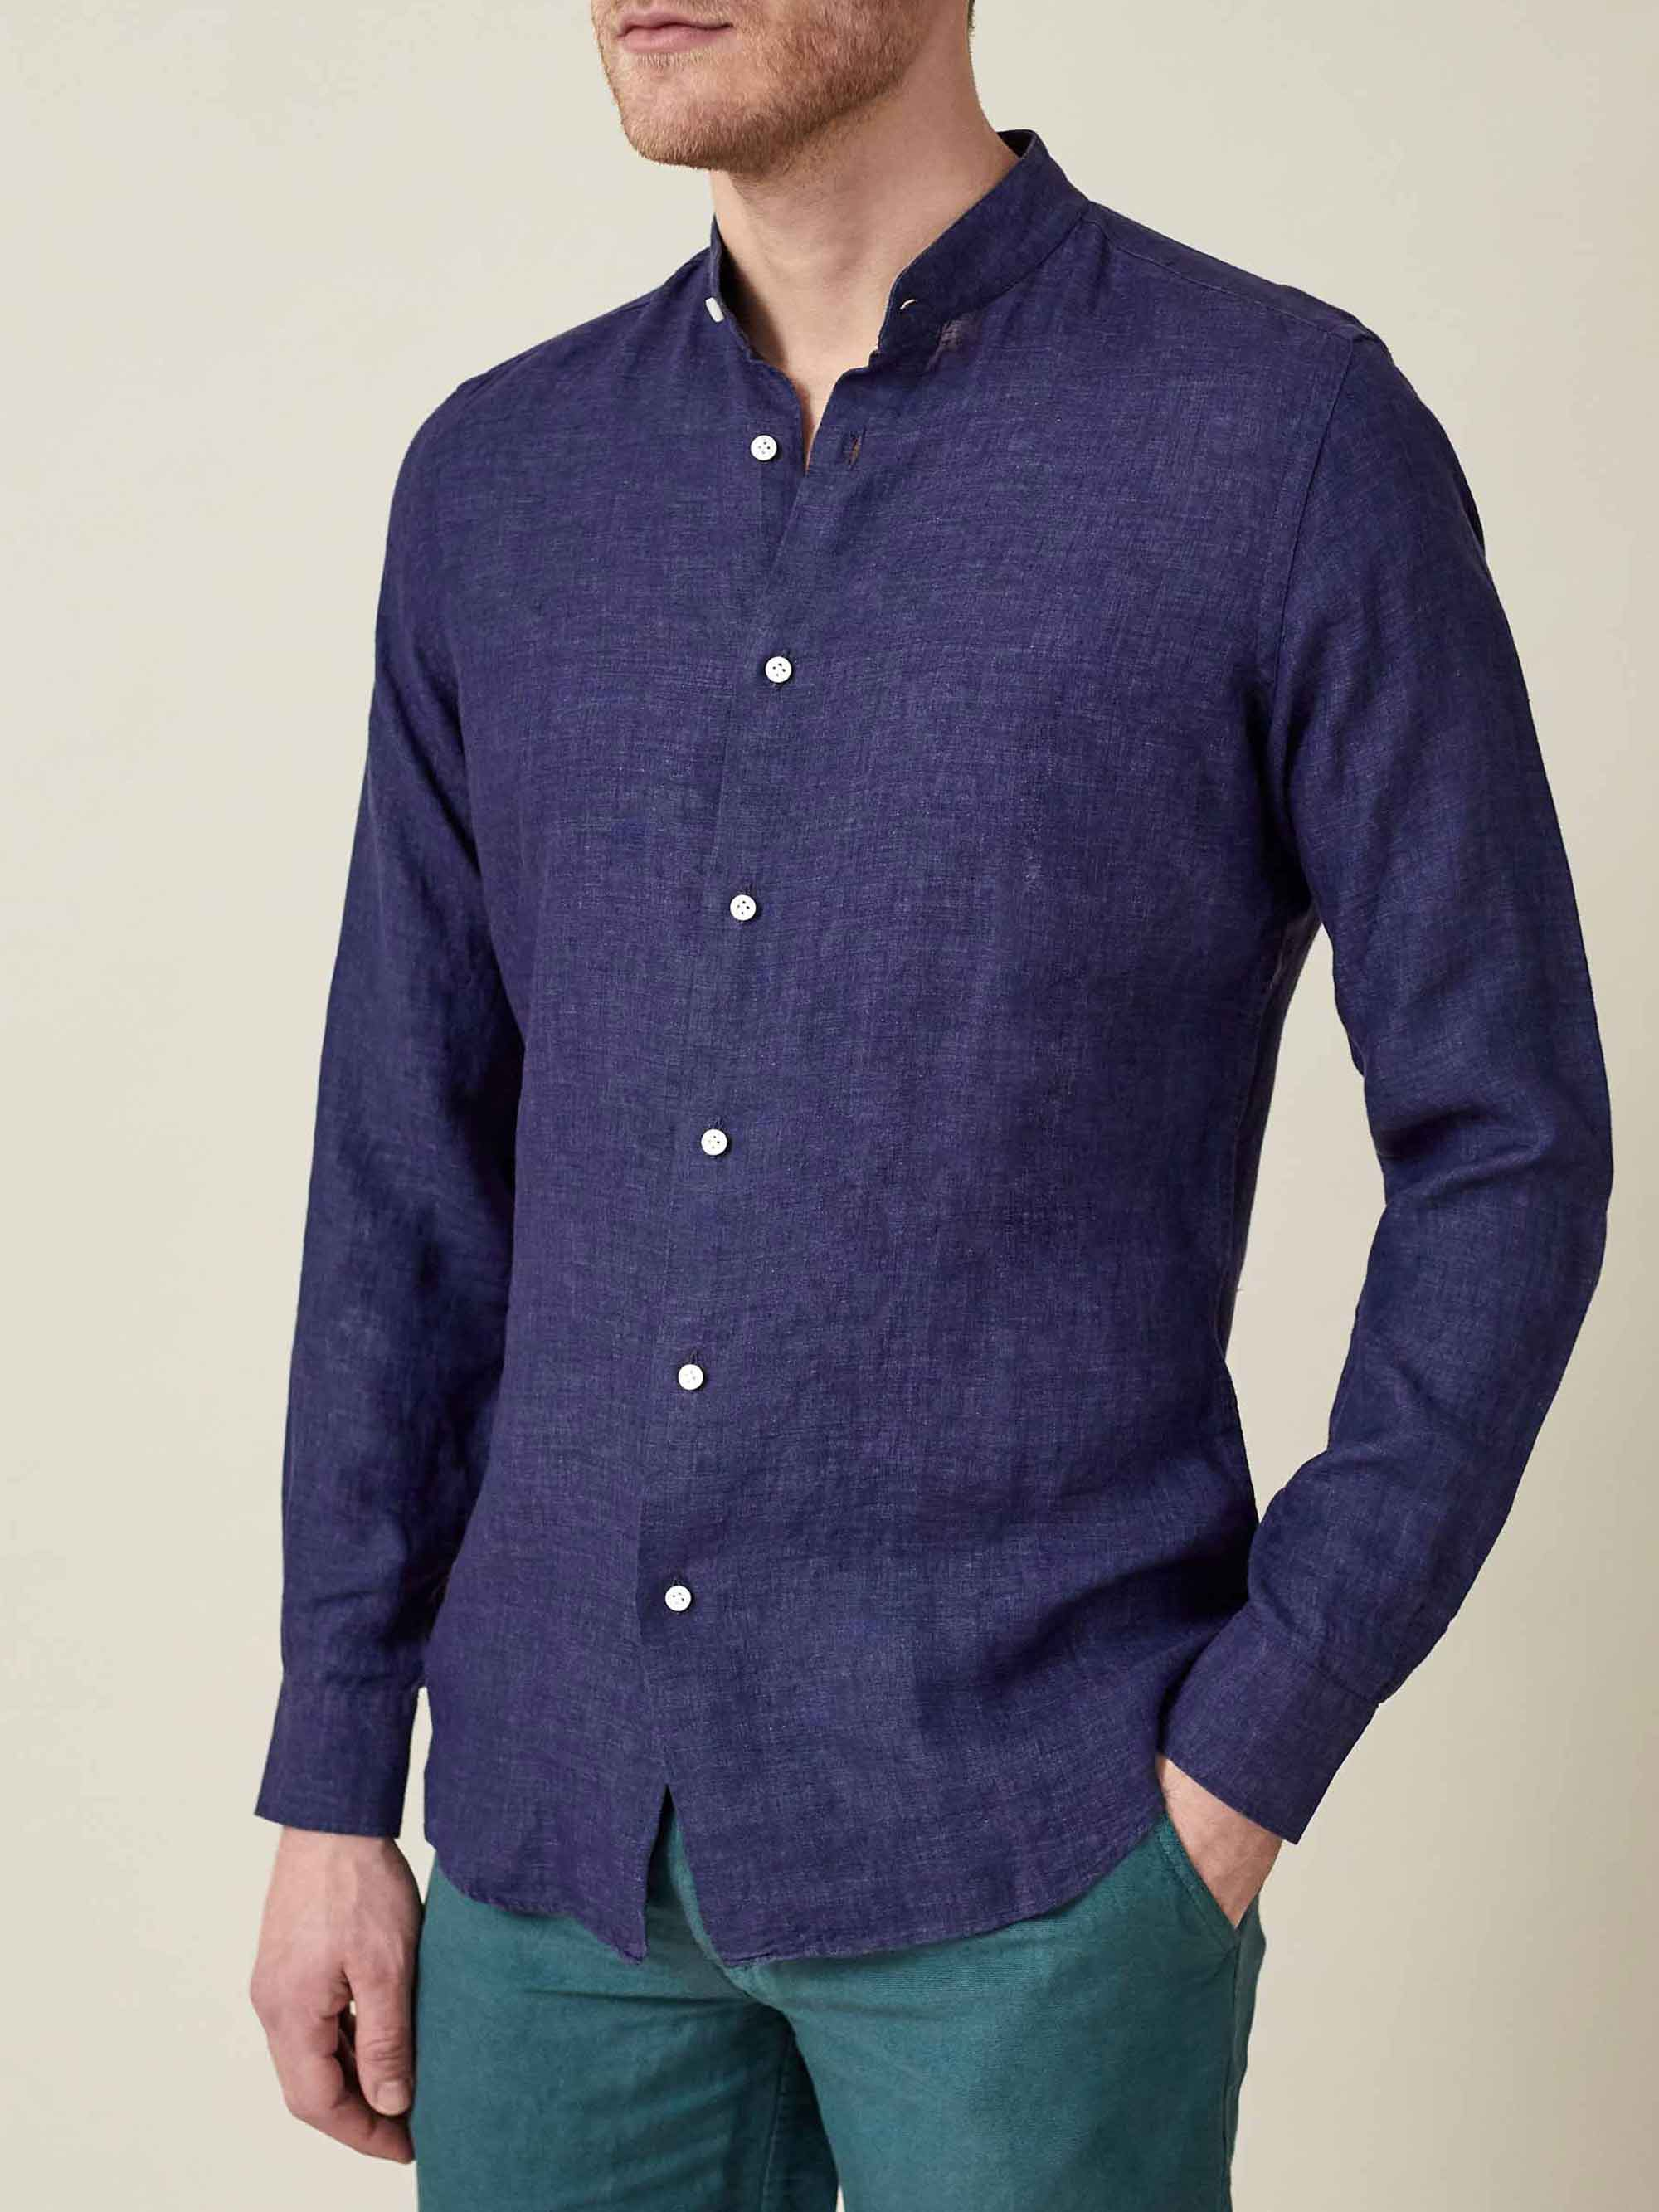 Luca Faloni Navy Blue Versilia Linen Shirt Made in Italy